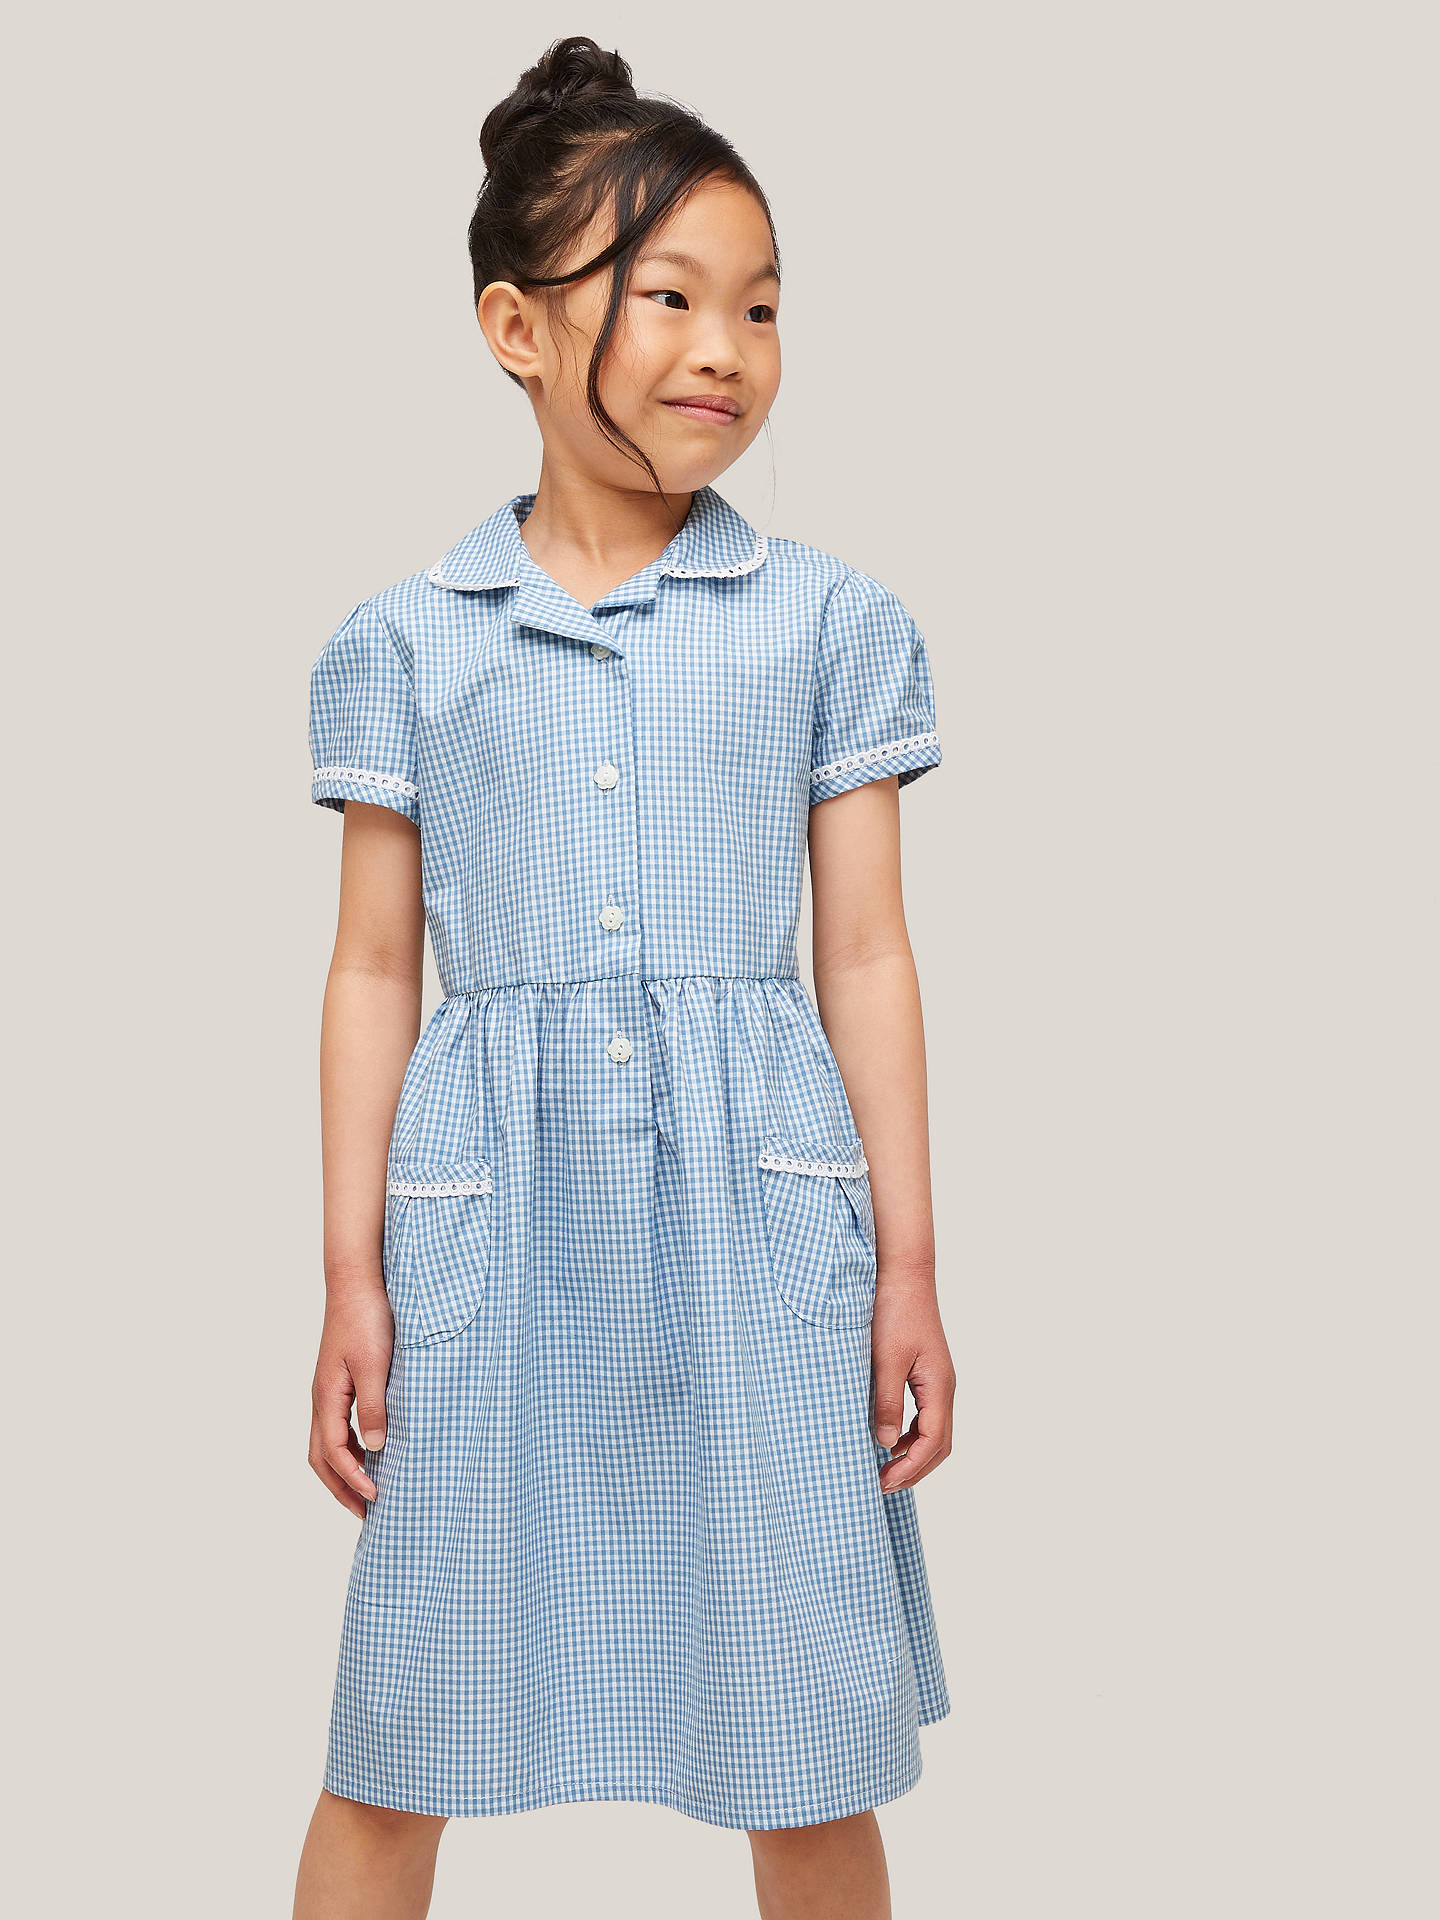 399937222c7 John Lewis   Partners Gingham Cotton School Summer Dress at John ...